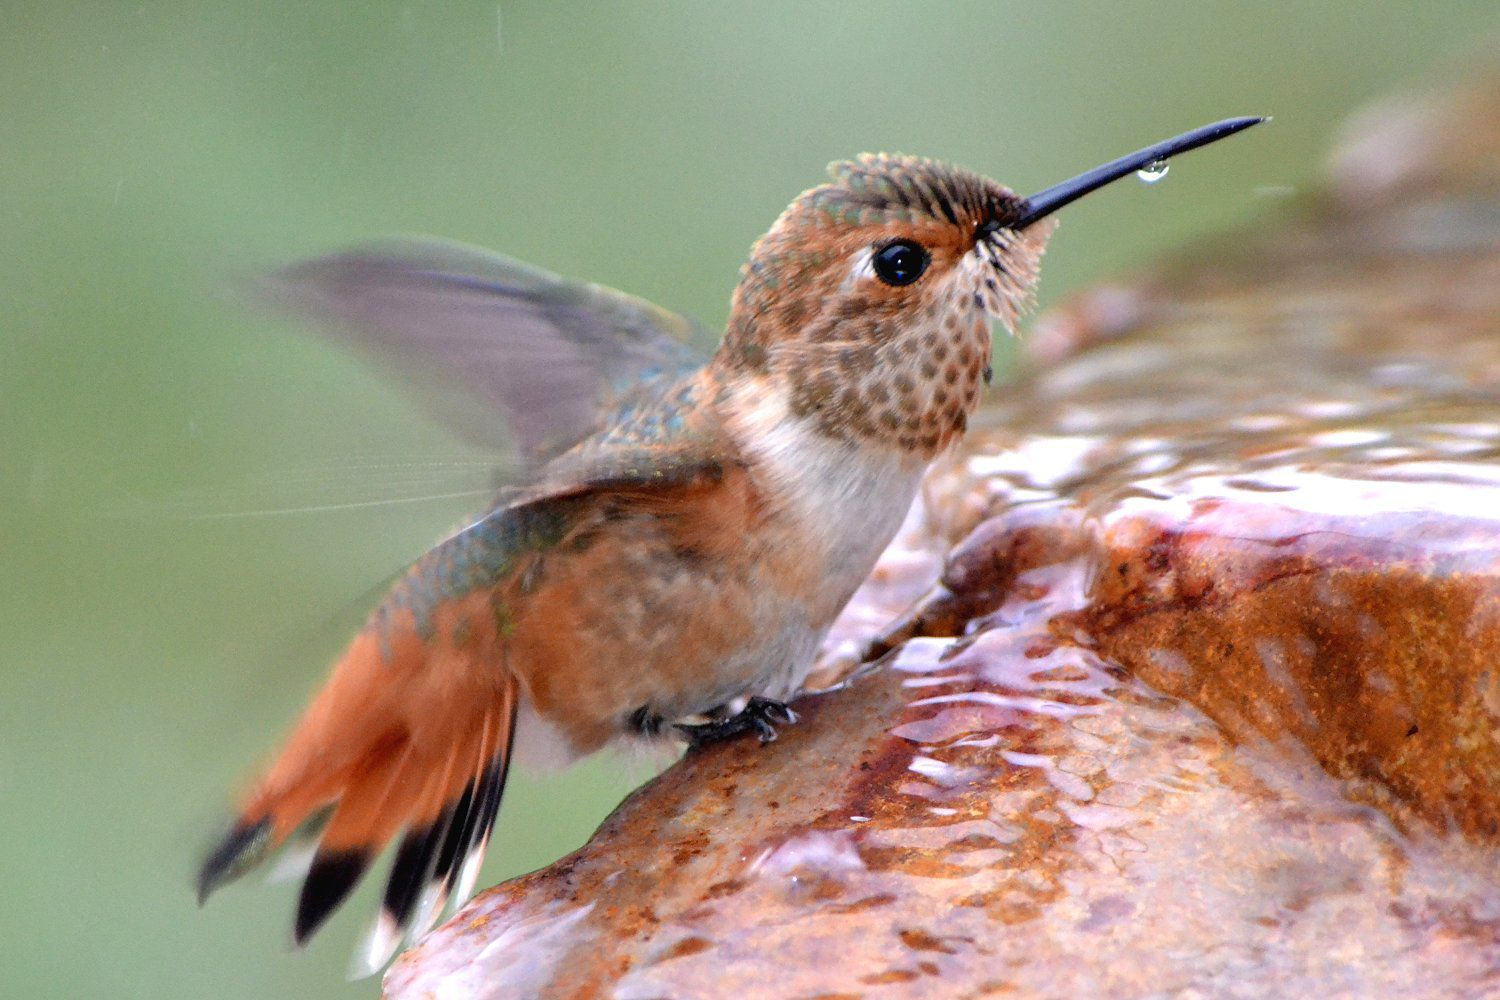 A hummingbird fountain will attract hummers with water